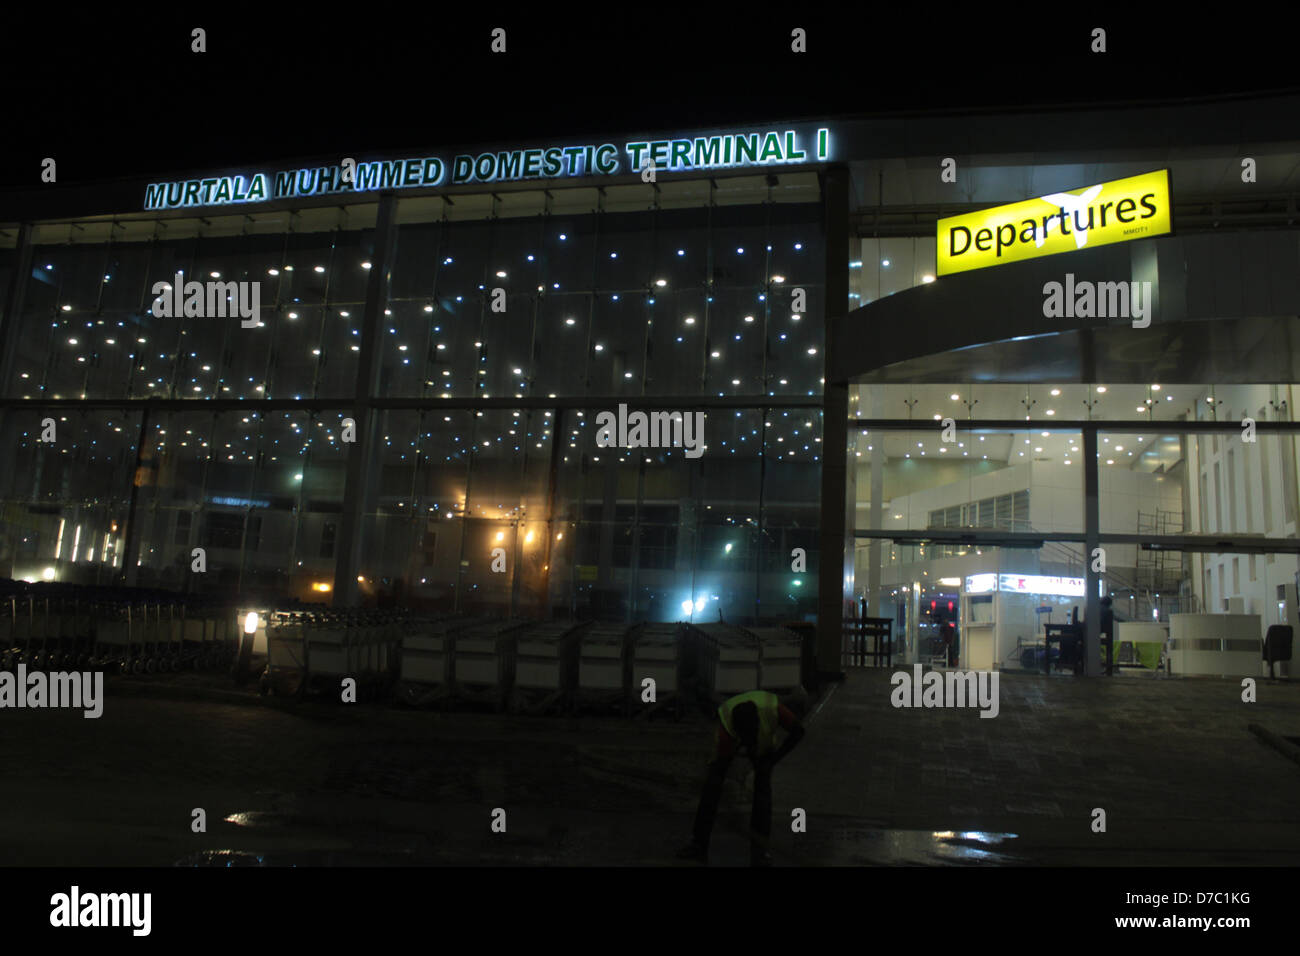 A night view of Murtala Muhammed Domestic Terminal 1 in Lagos. - Stock Image